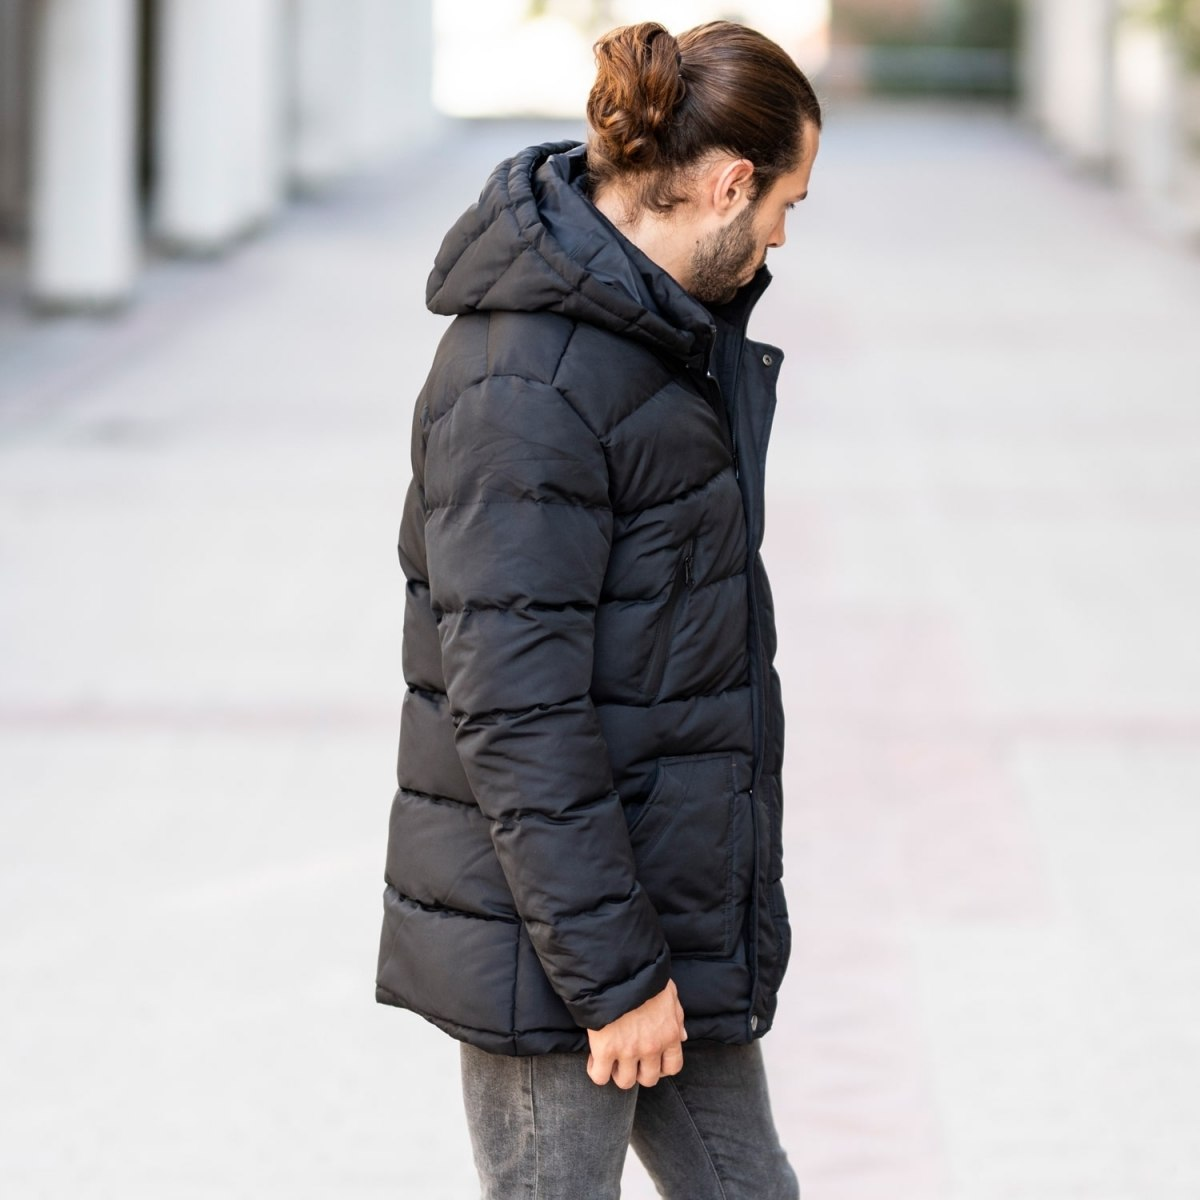 Windproof Puff Jacket In Black MV Jacket Collection - 3